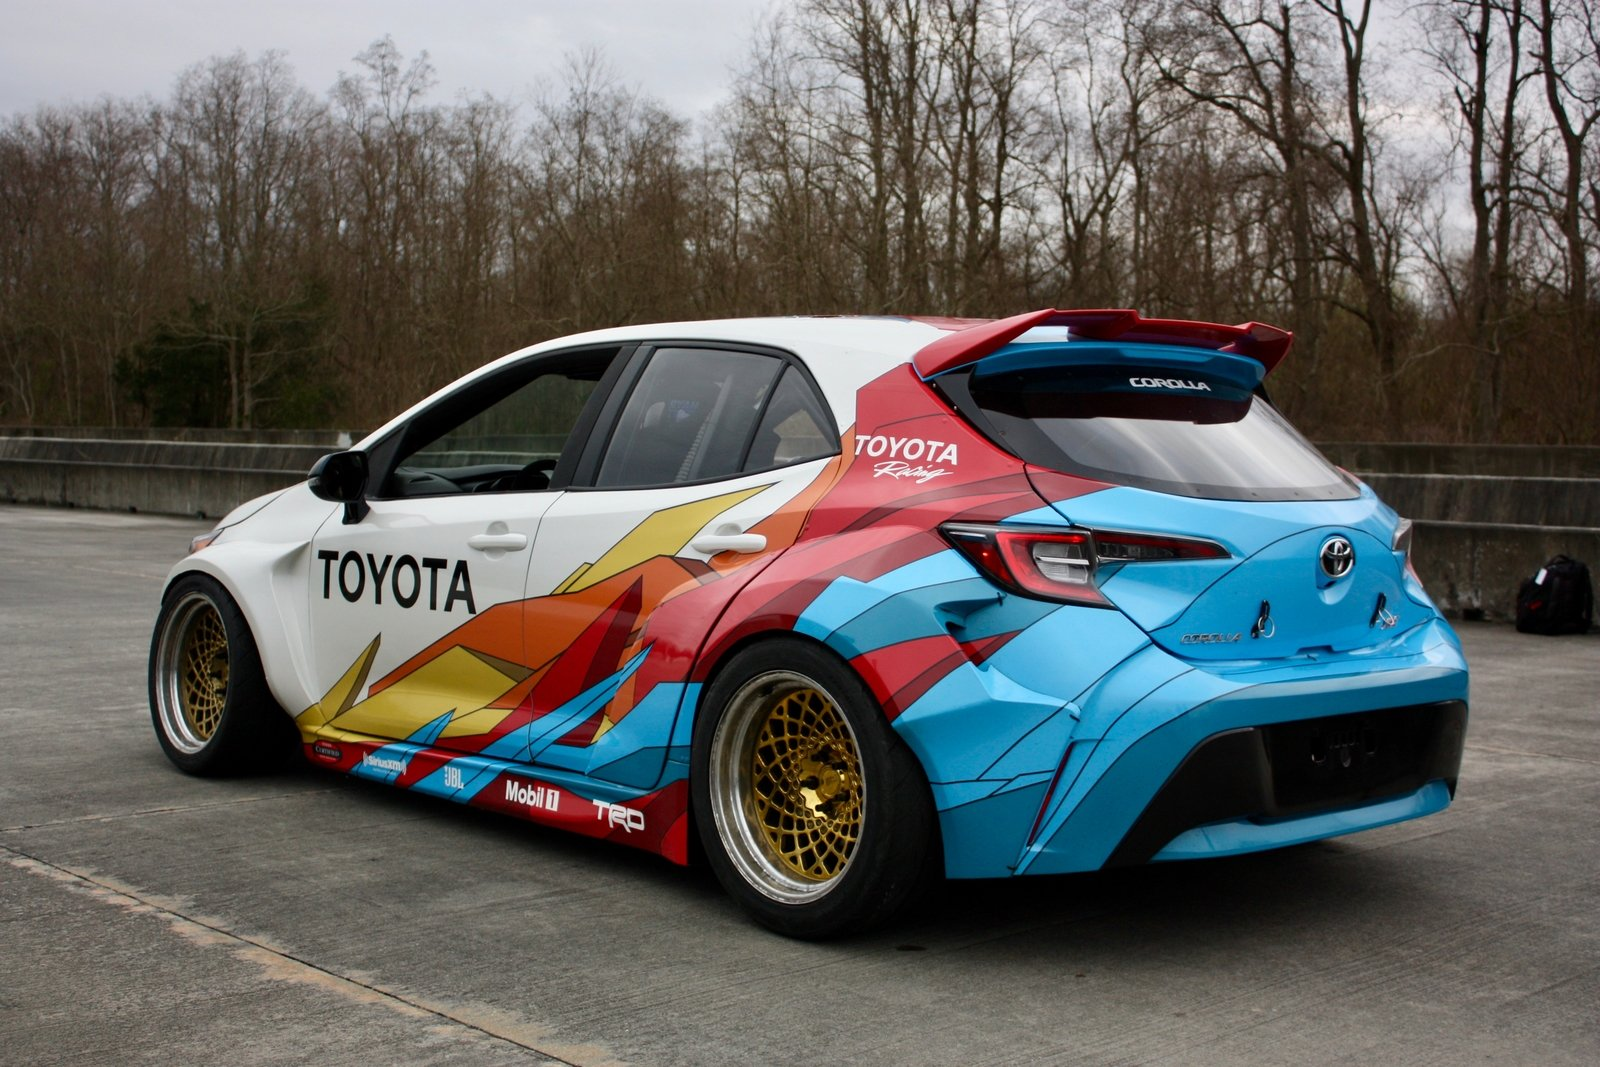 Toyota Of Surprise >> I Took A Ride In Ryan Tuerck's Toyota Corolla Hatch Drift Car And It Melted My Brain   Top Speed